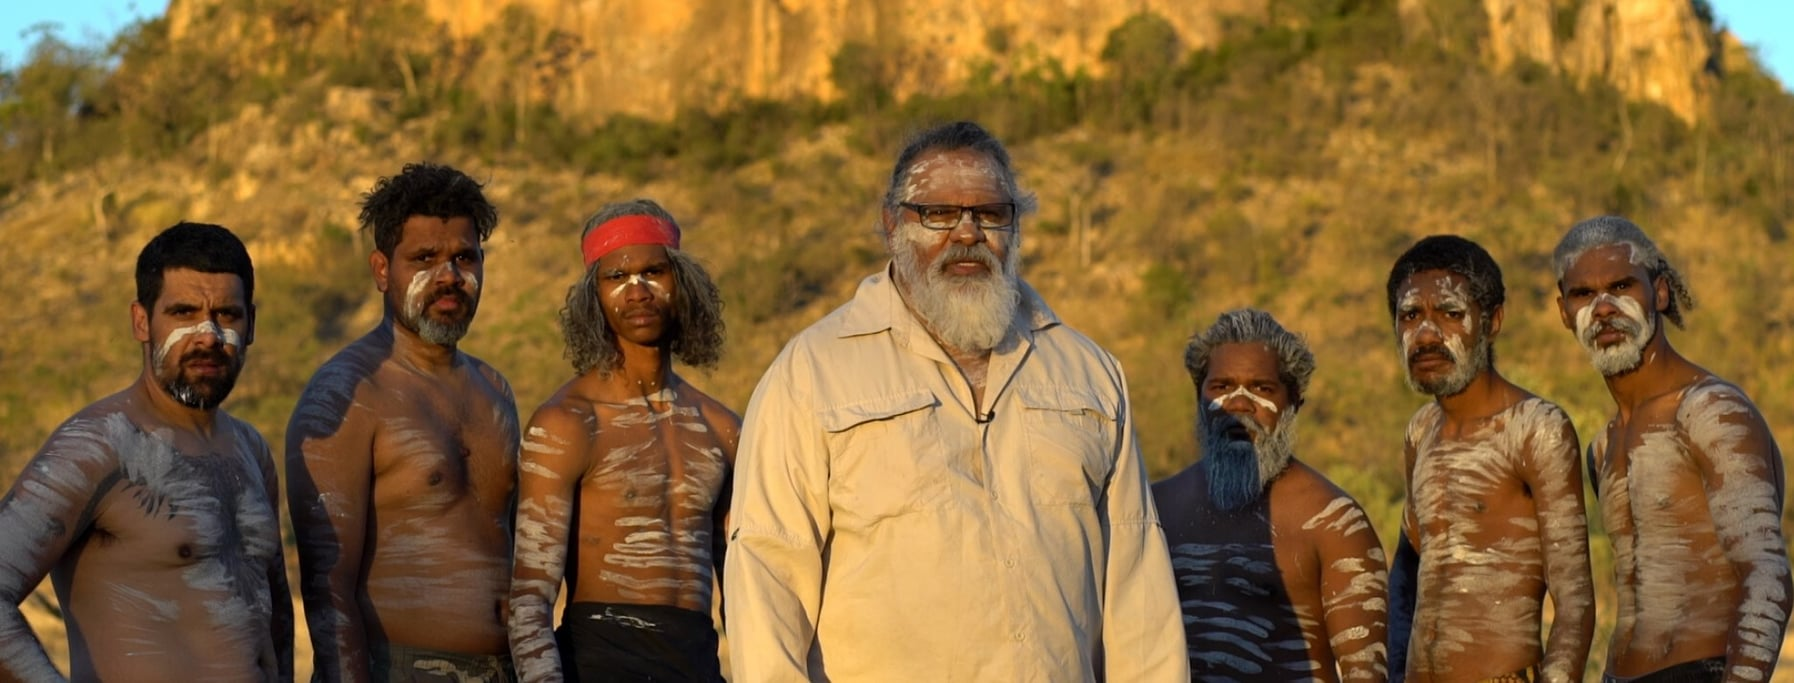 Cultural leader, Adrian Burragubba, and fellow Wangan and Jagaligou opponents of the Adani coal mine on their Country.